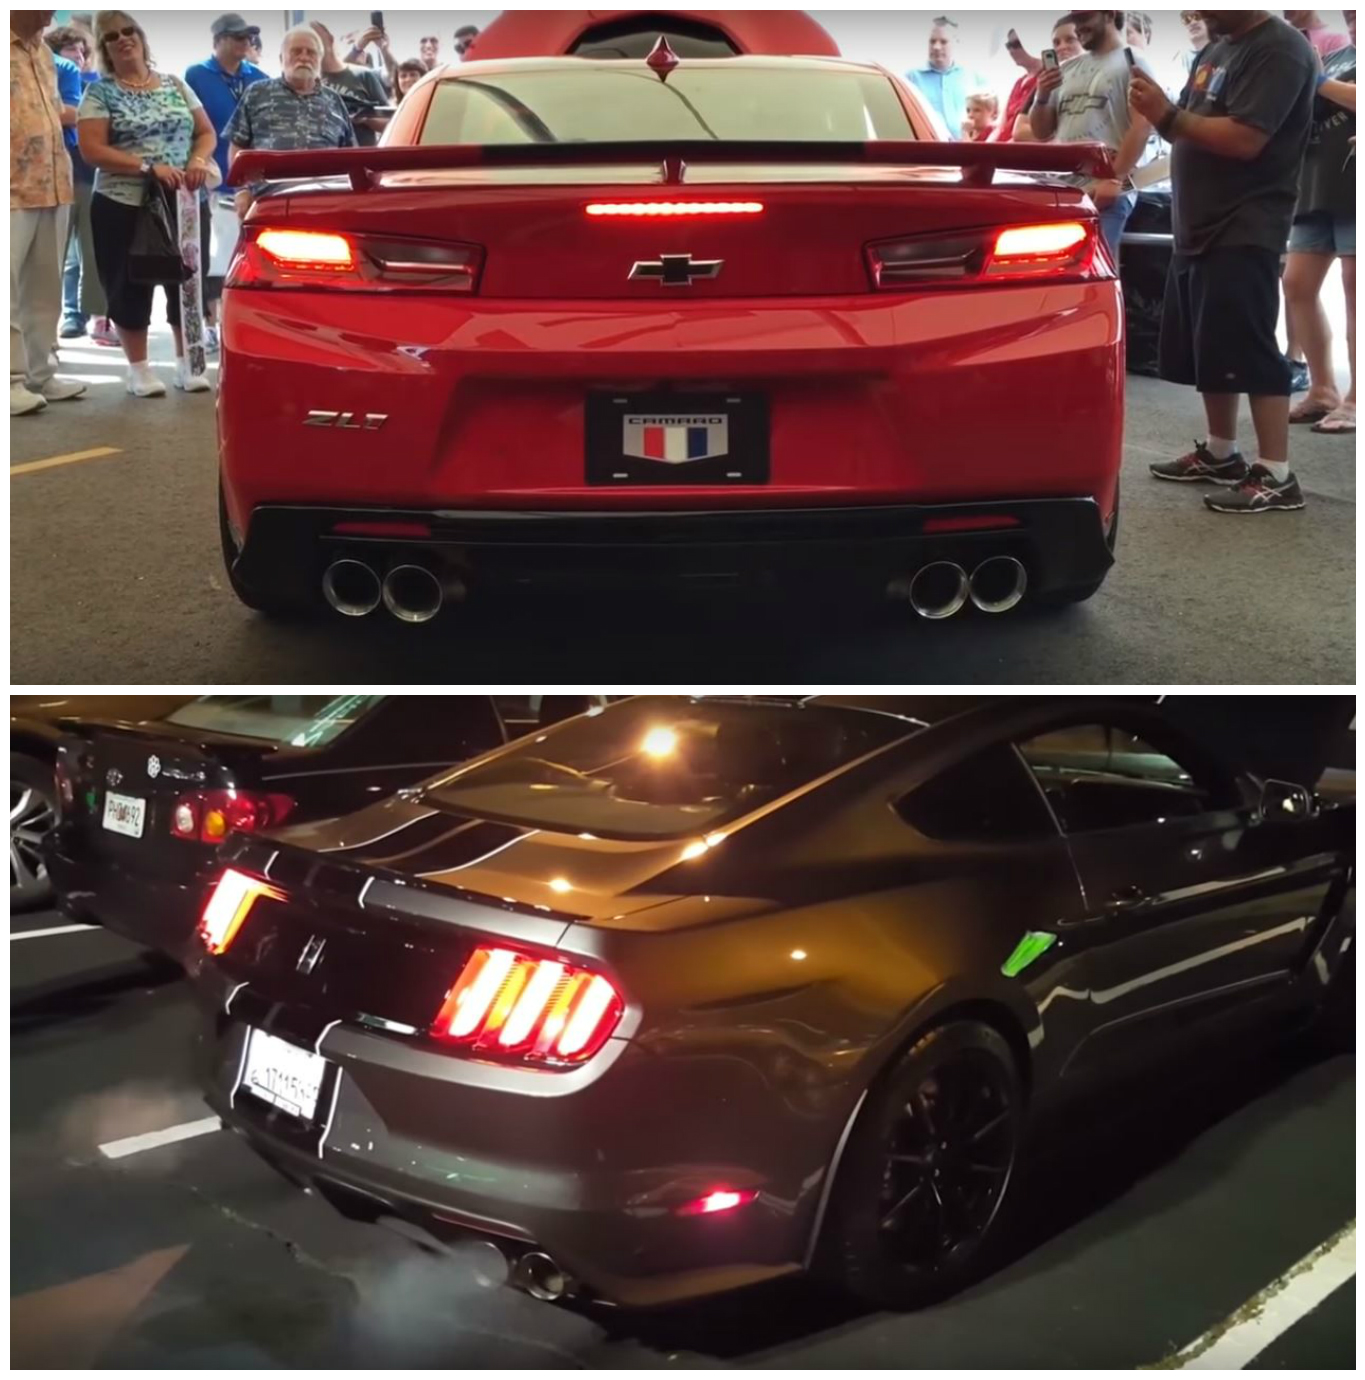 2017 Chevrolet Camaro Zl1 Vs Mustang Shelby Gt350 Exhaust